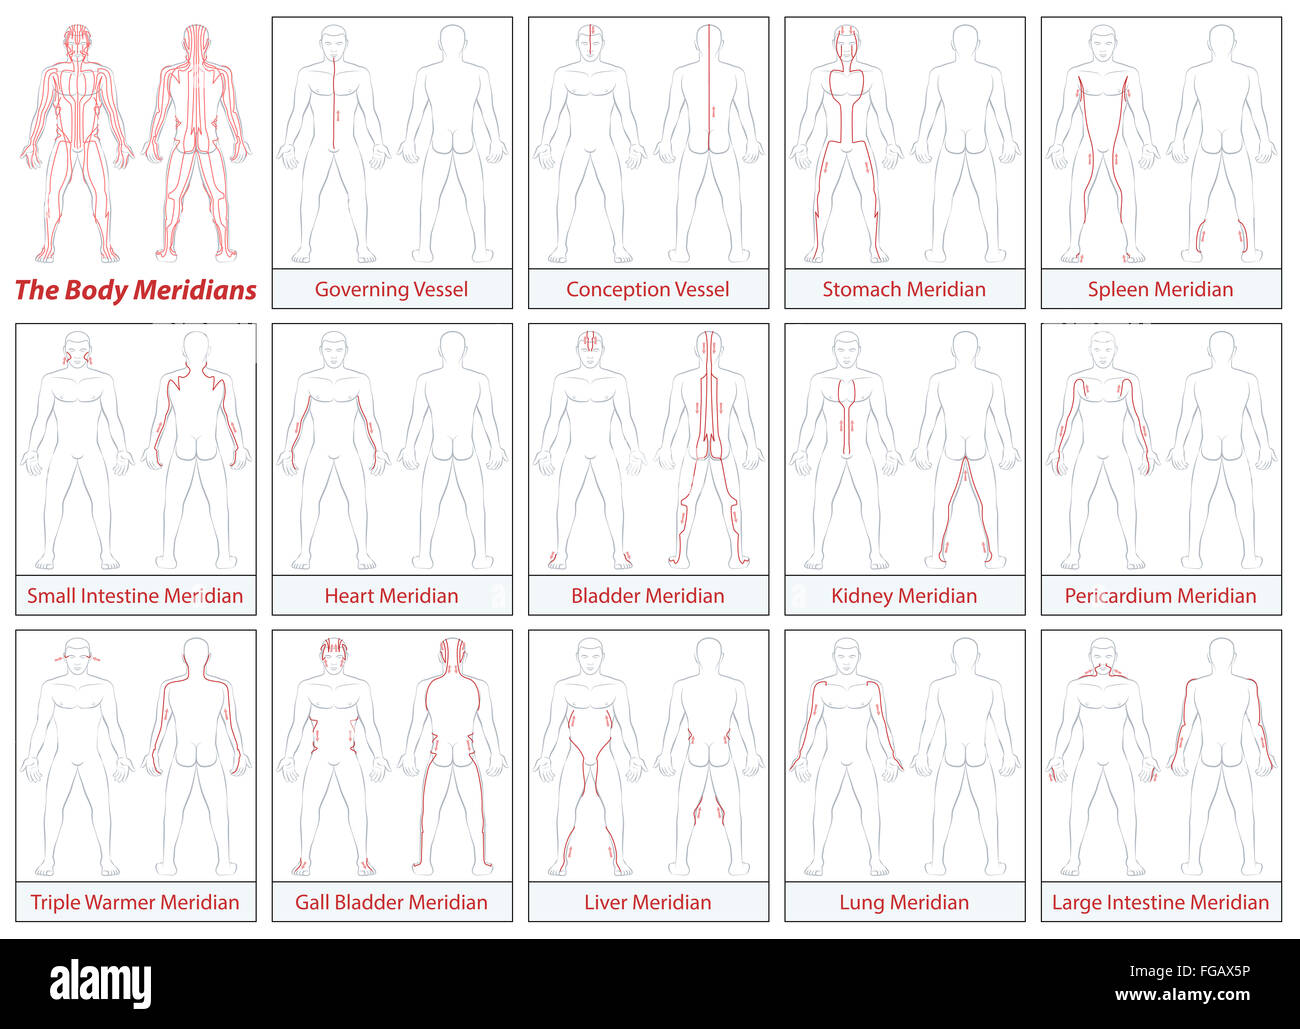 body meridians - schematic diagram with main acupuncture meridians and  their directions of flow